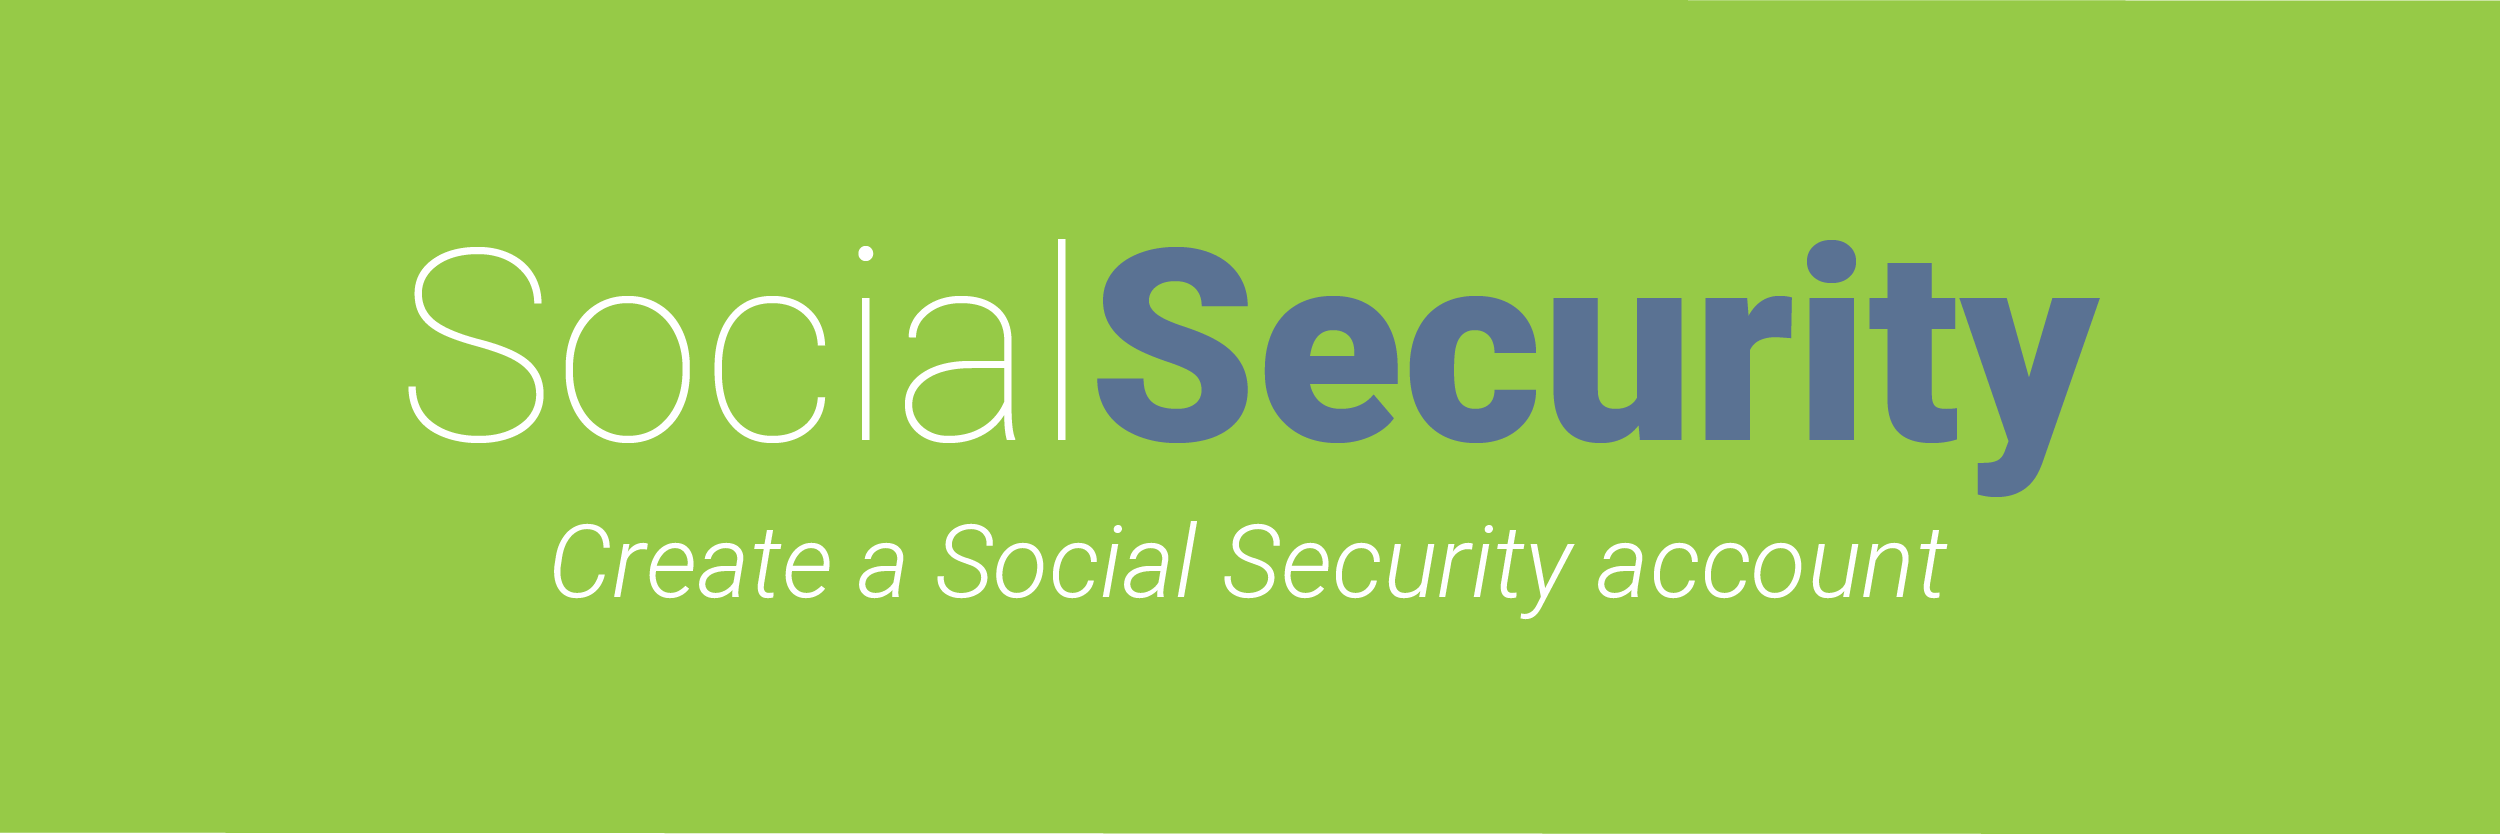 Social Security-01